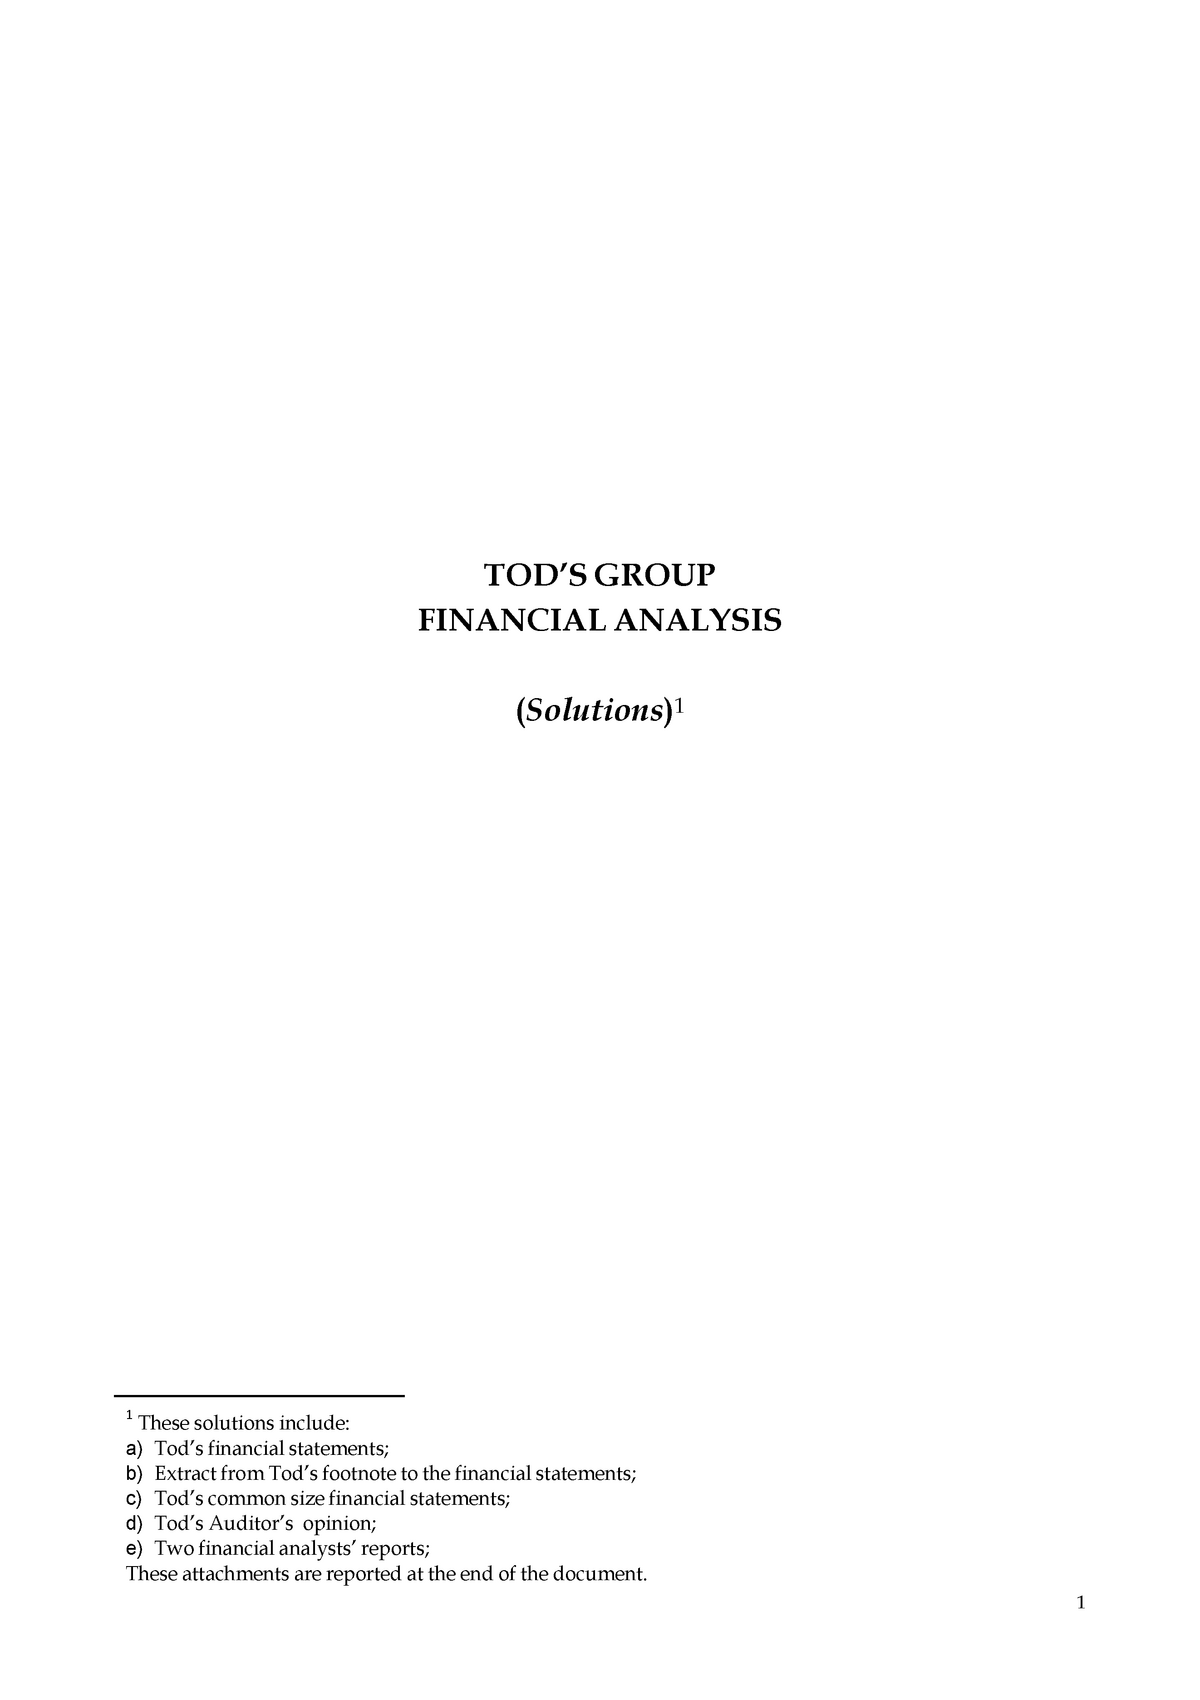 5b08f985d7 Tod's case study solution - 30364: Accounting (Module II) - Managerial  Accounting - StuDocu